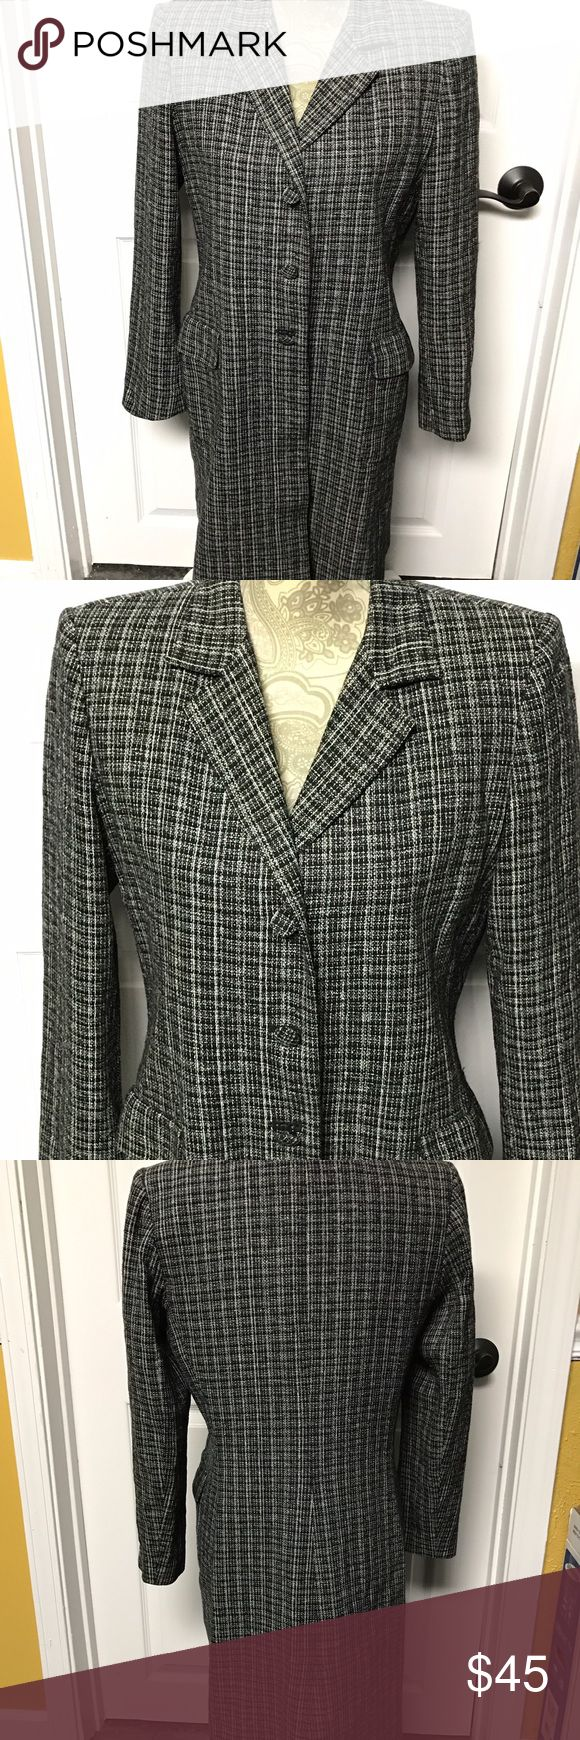 KAY UNGER VTG LONG BLAZER/JACKET BLACK/WHITE 8 VINTAGE KAY UNGER NEW YORK WOMEN'S LONG LIGHTWEIGHT BLAZER/JACKET BLACK/WHITE SIZE 8.  GREAT CONDITION! THE ONLY THING IS THE BOTTOM BUTTON IS A BIT LOOSE. THE LINING IS PURPLE. Kay Unger Jackets & Coats Blazers